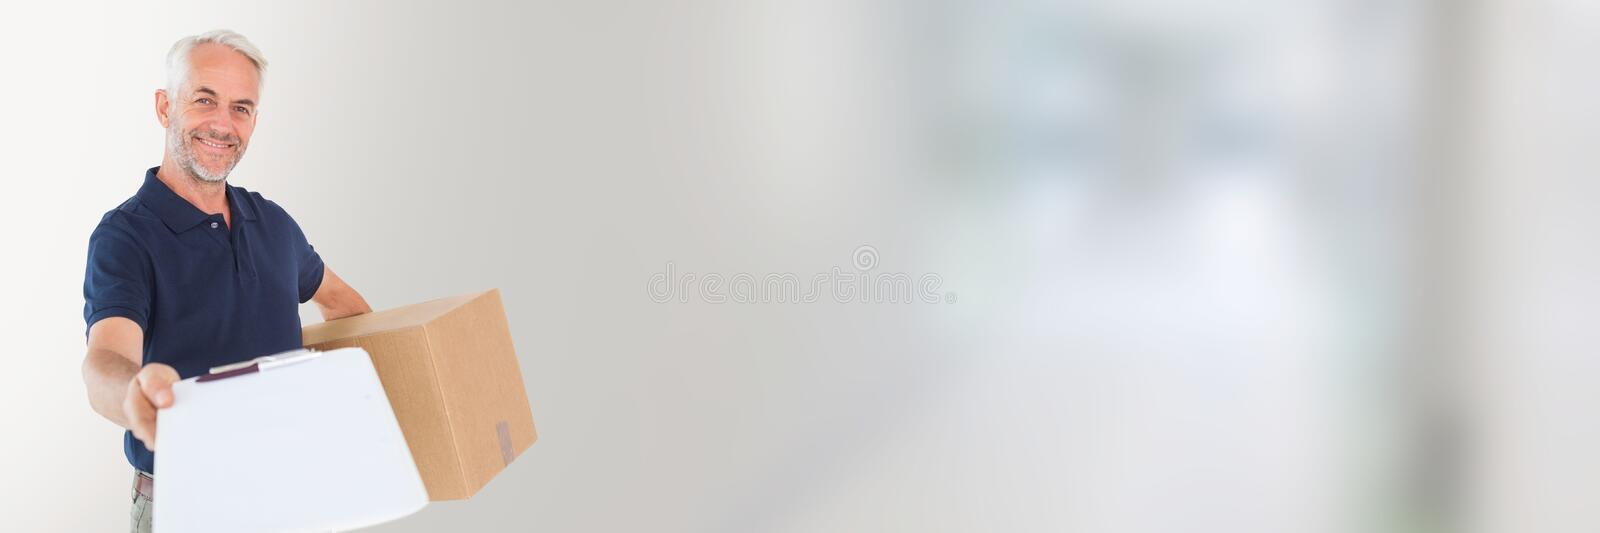 Delivery Courier holding box and form in front of blurred background. Digital composite of Delivery Courier holding box and form in front of blurred background royalty free stock image